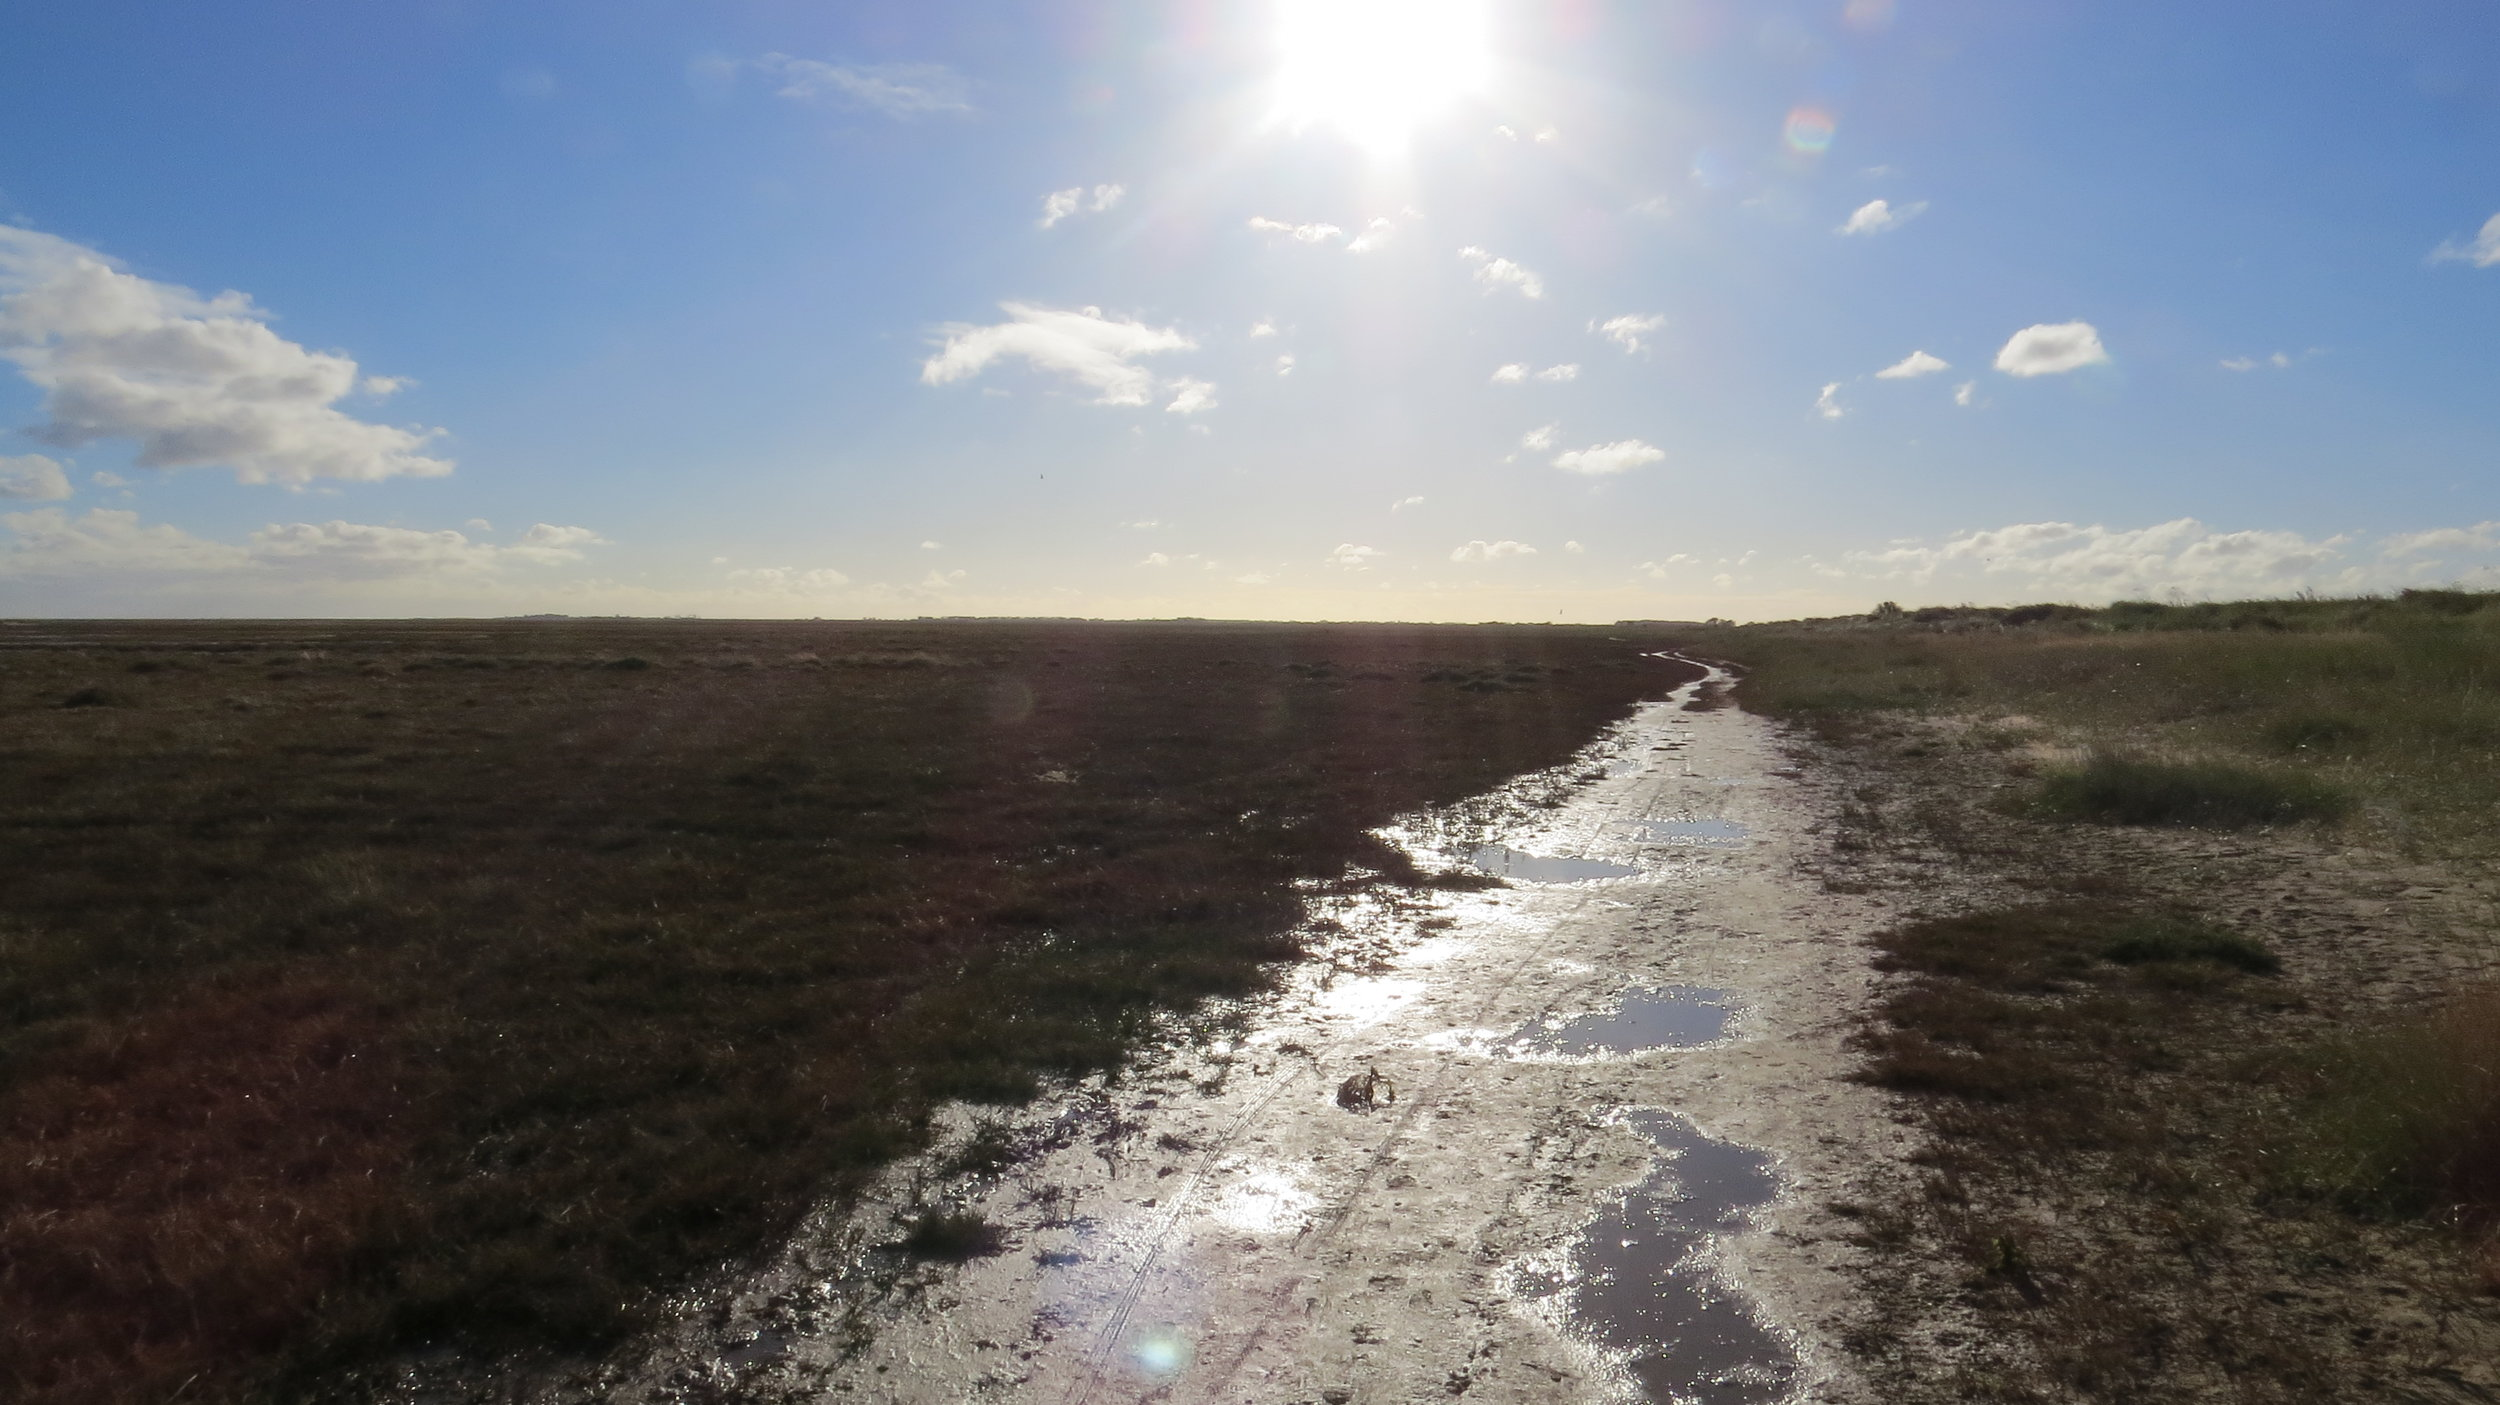 Down on the Mudflats